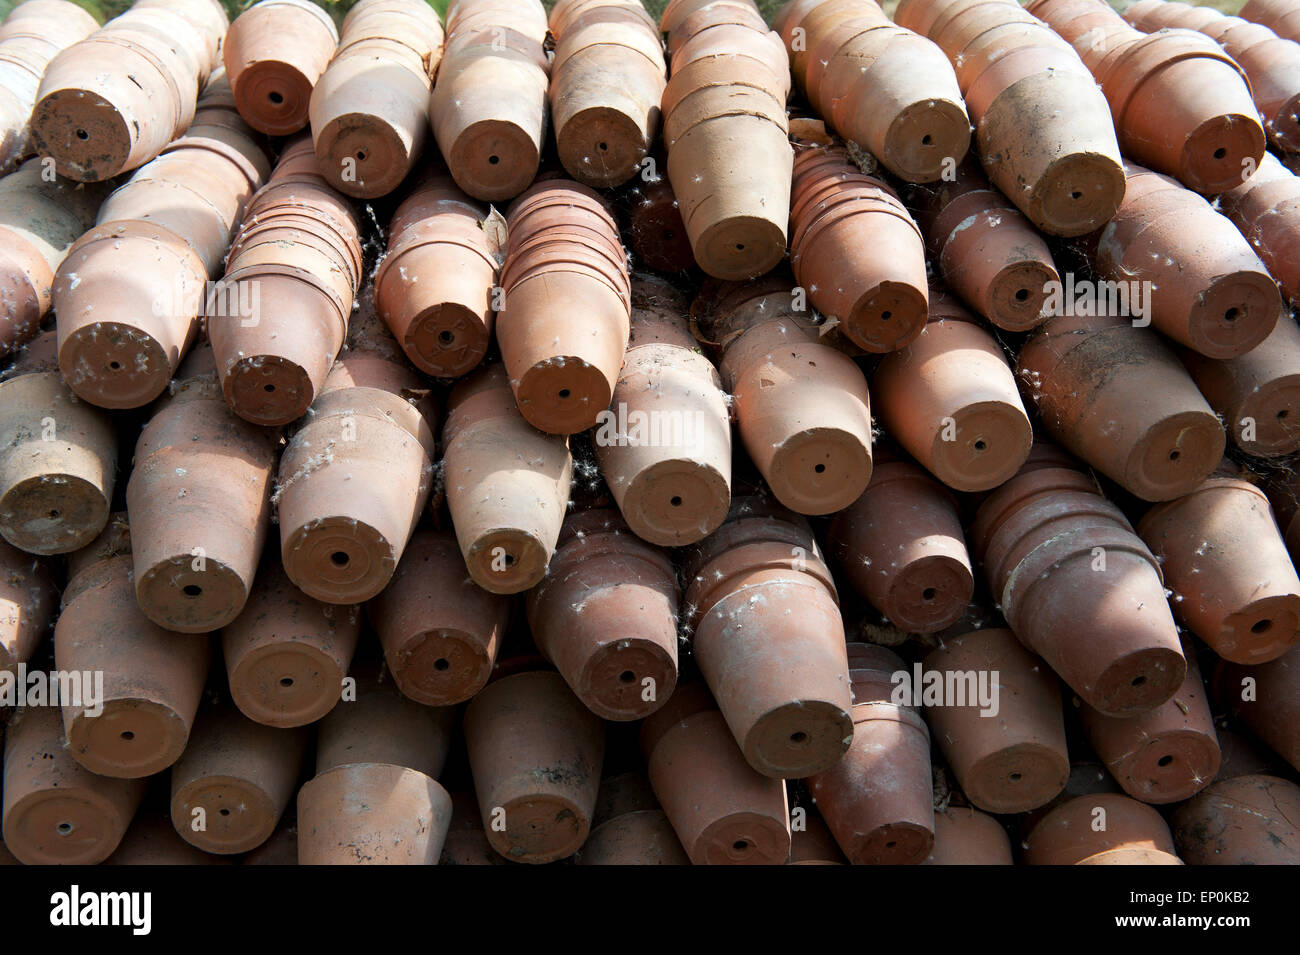 Clay pots in the green house - Stock Image